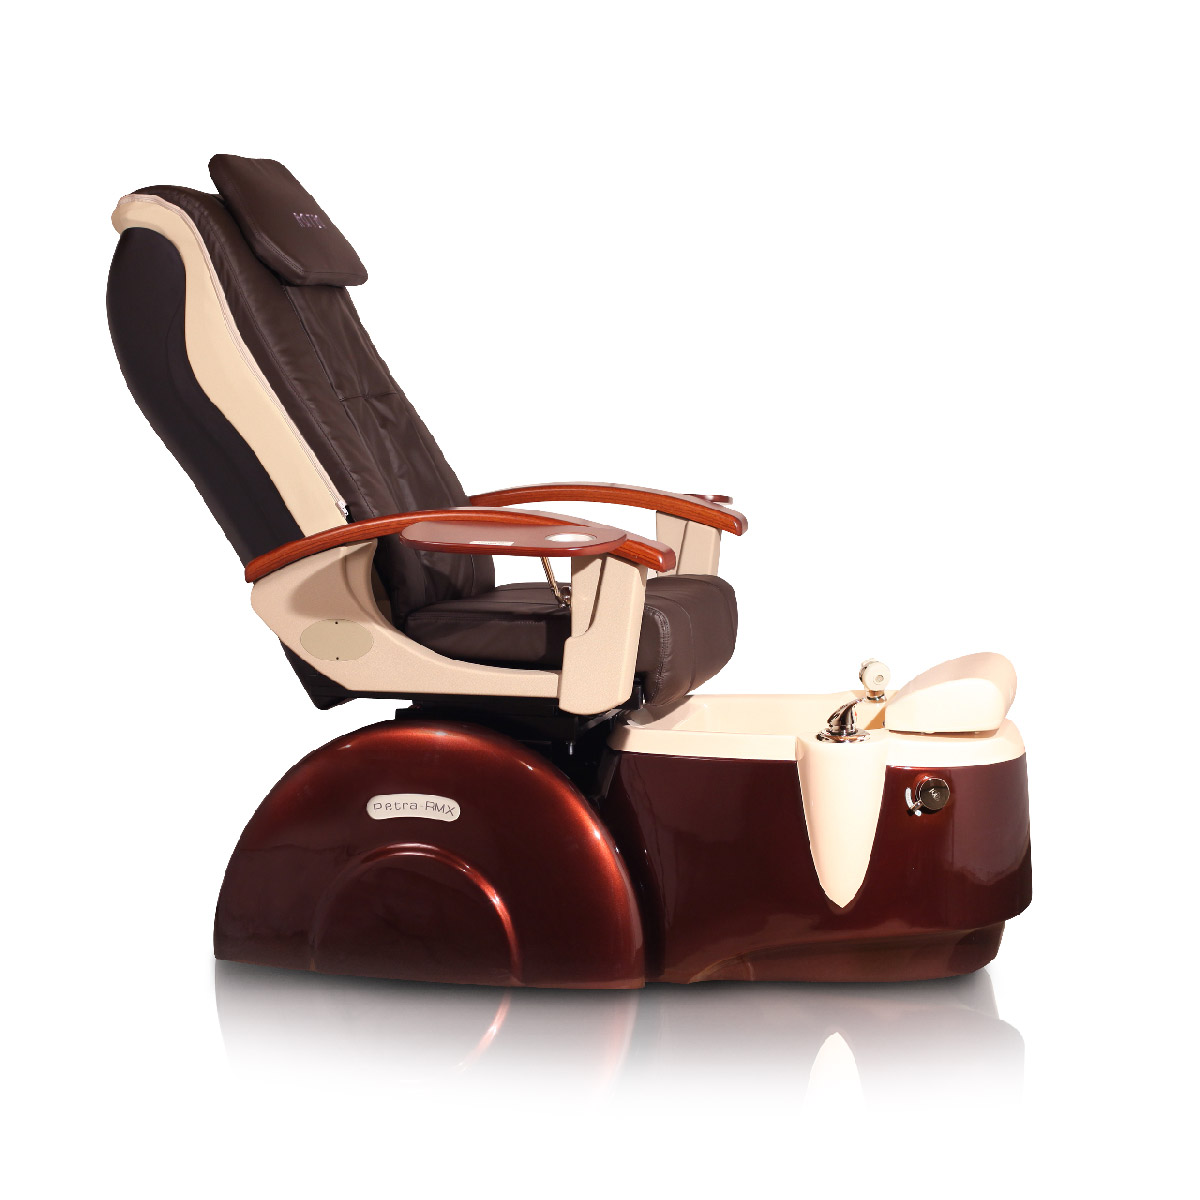 J & A Petra RMX Pipeless Whirlpool Pedicure Spa Chair  main product image